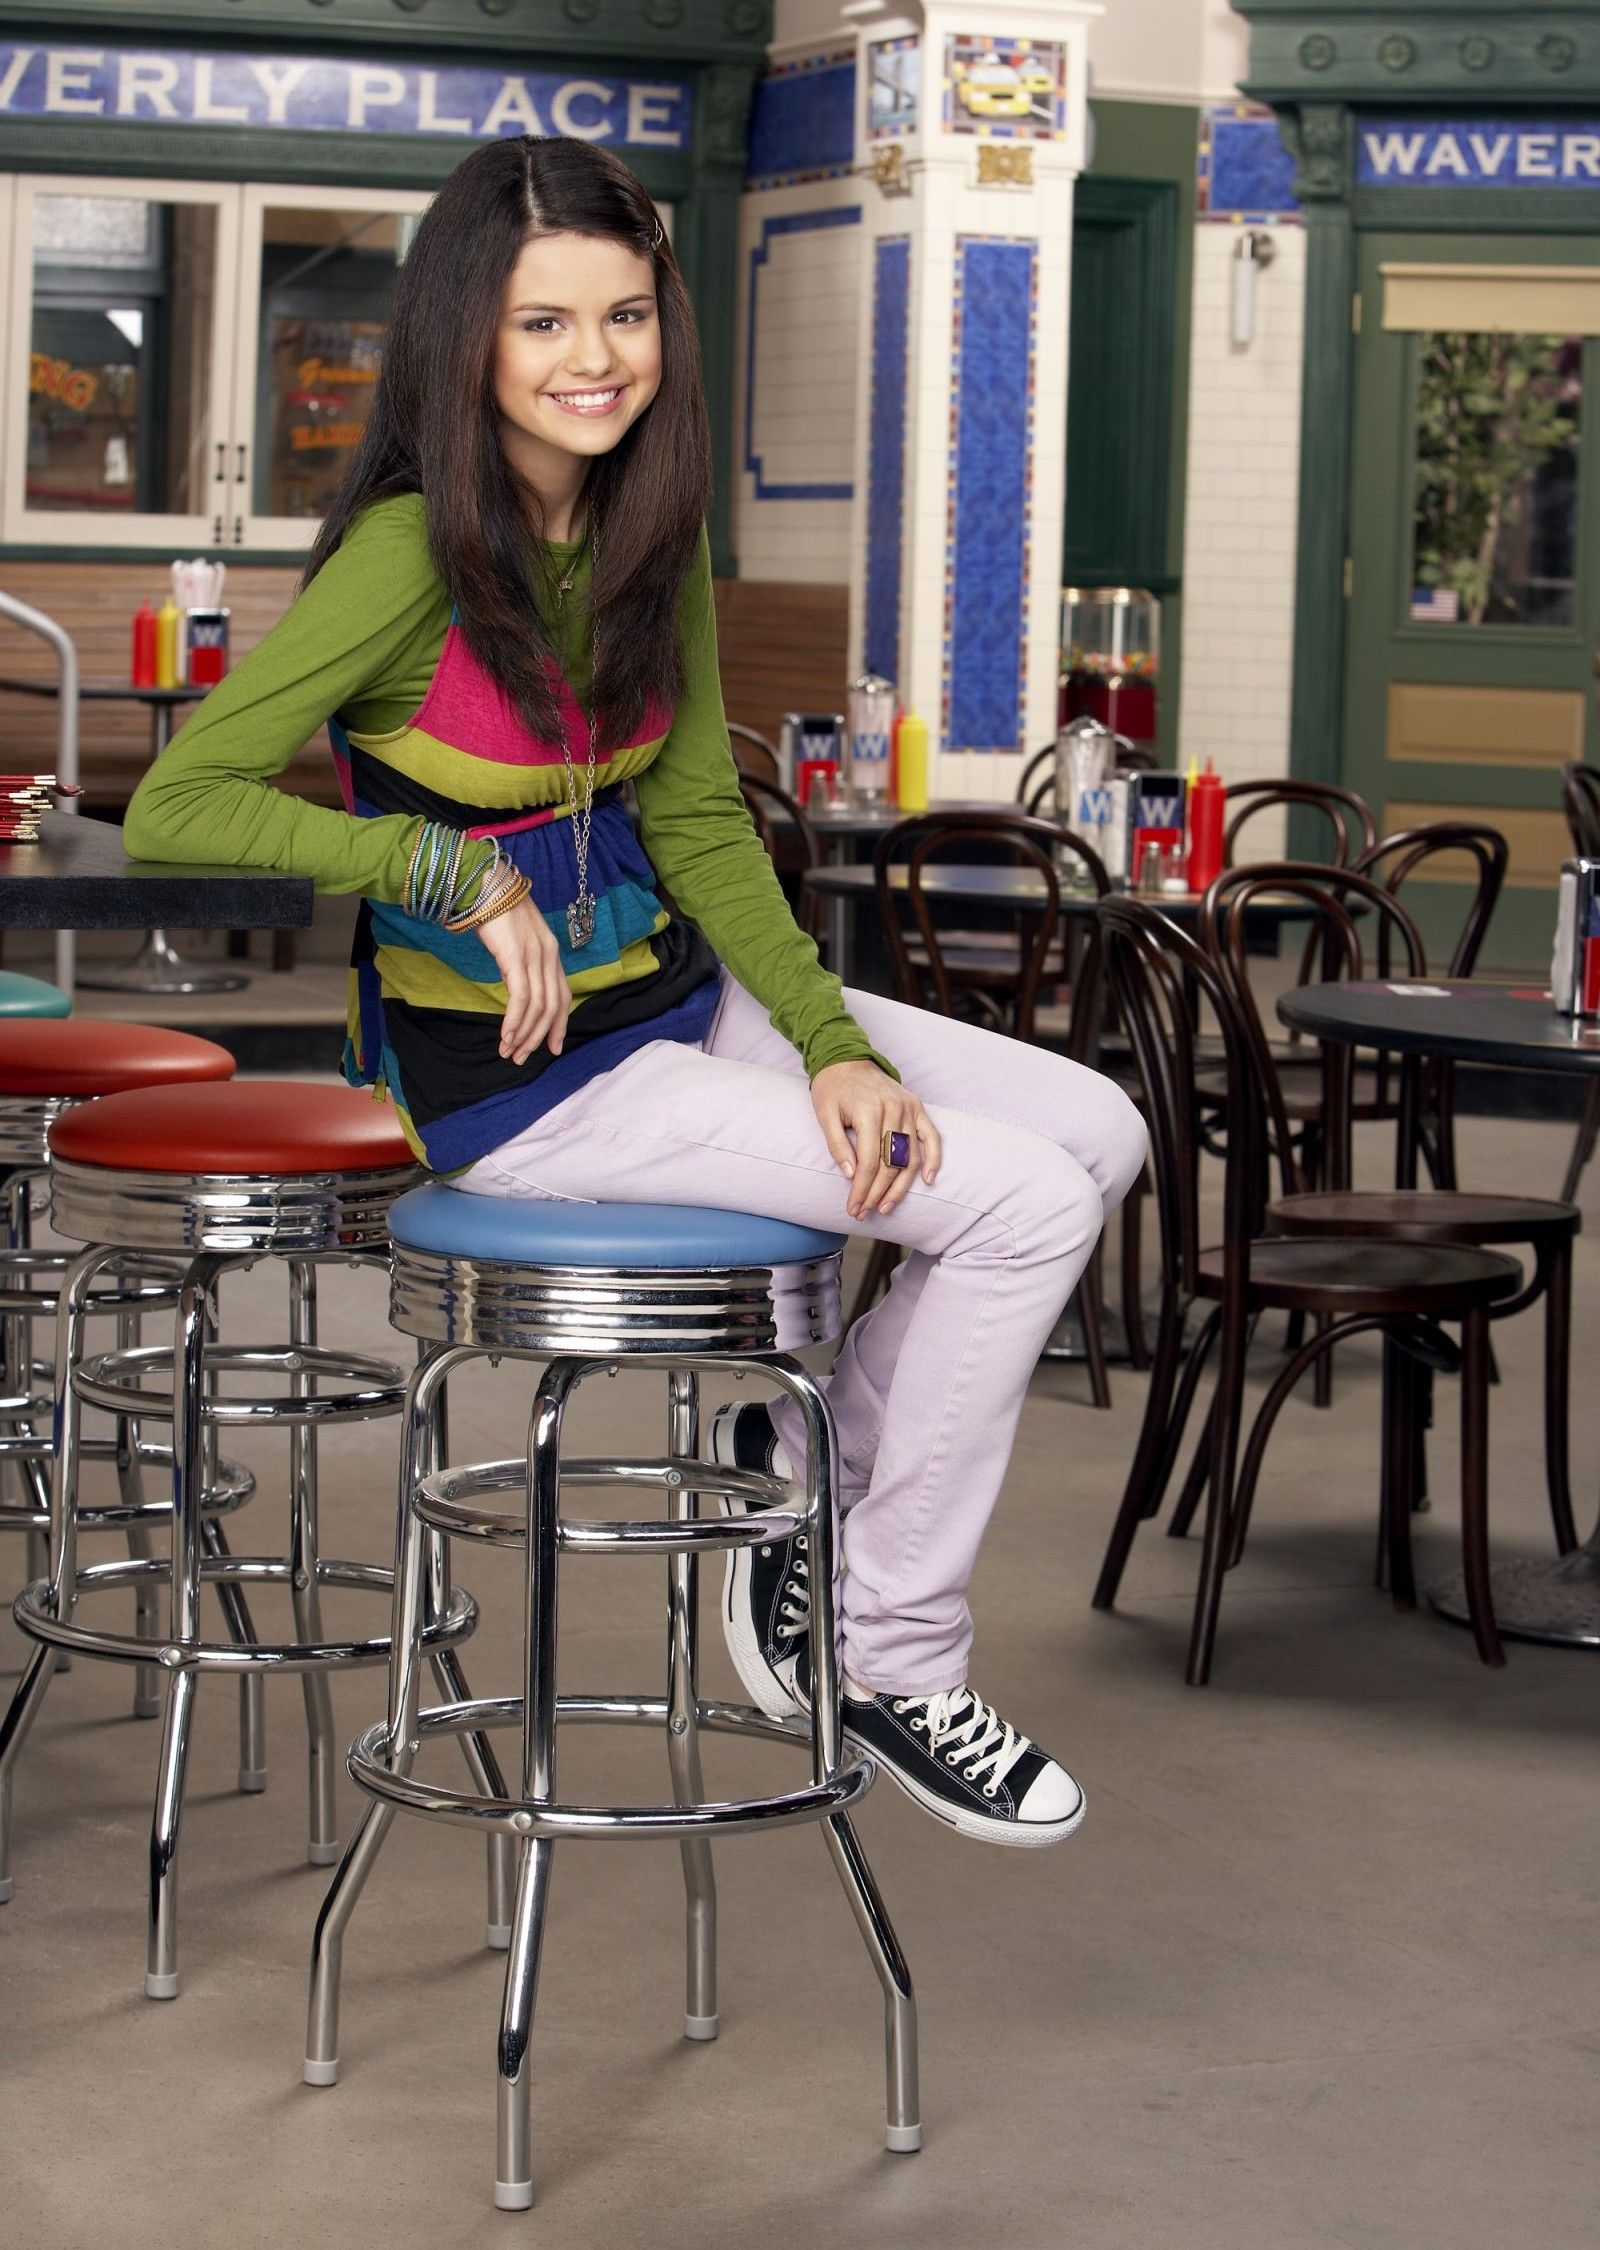 Selena Gomez Alex Russo In Wizards Of Waverly Place